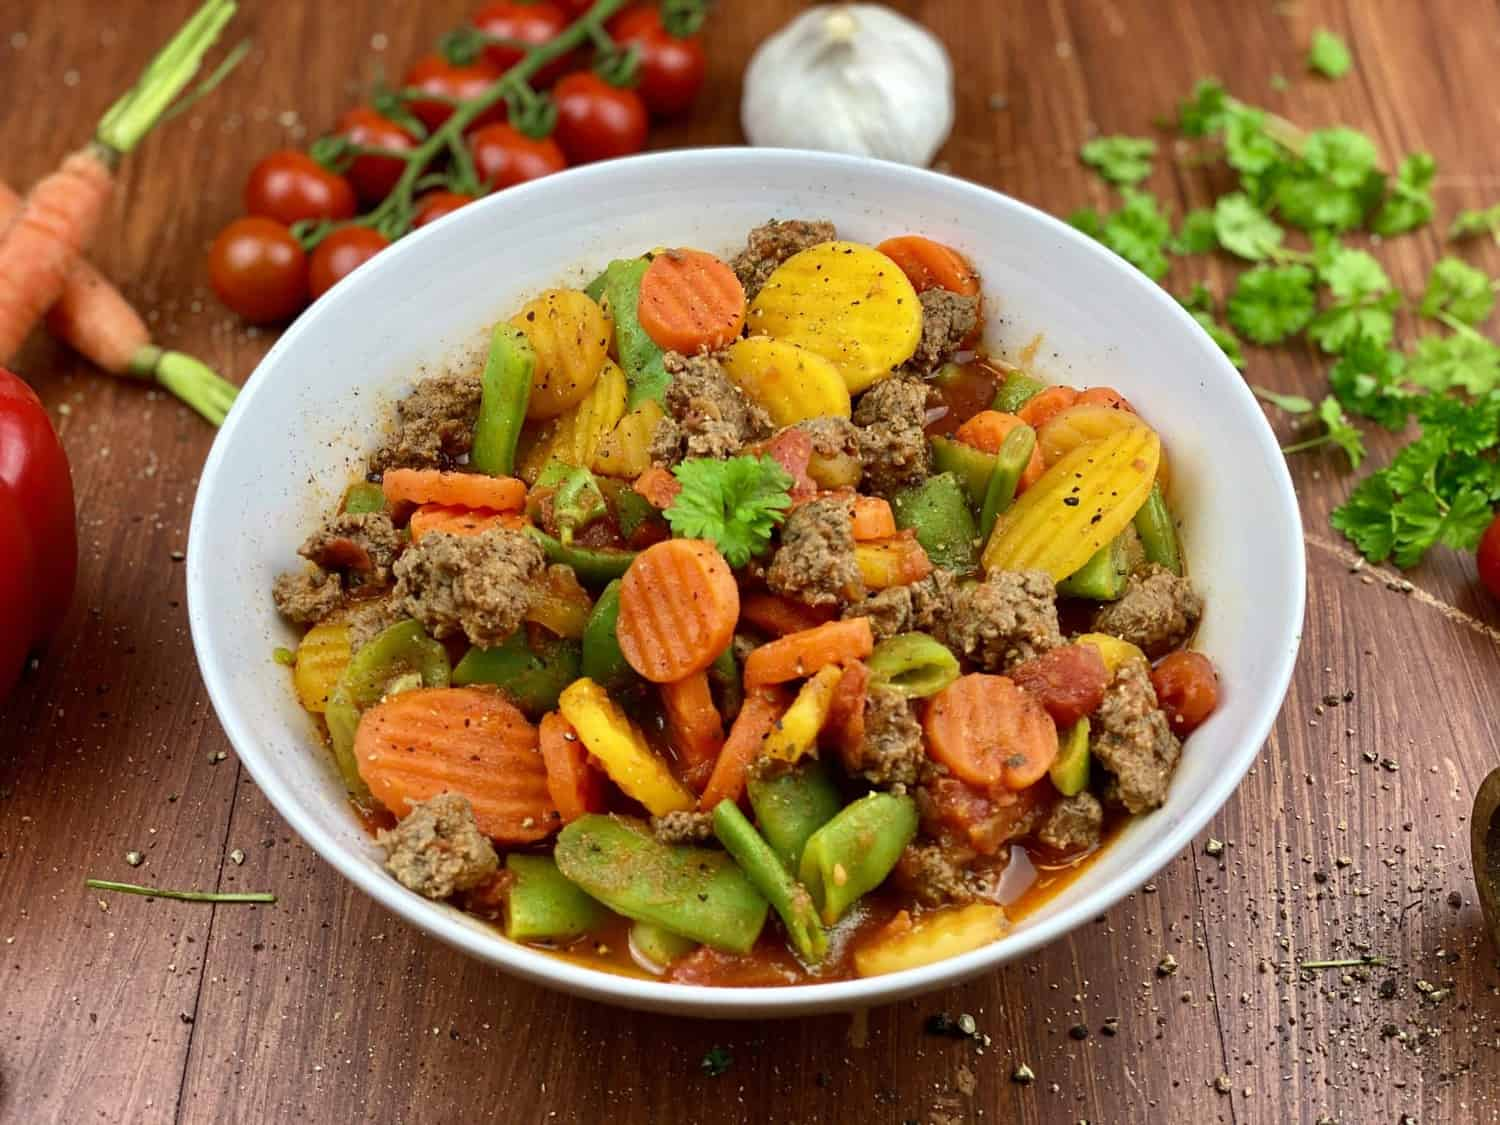 Garlic vegetable pan with minced meat